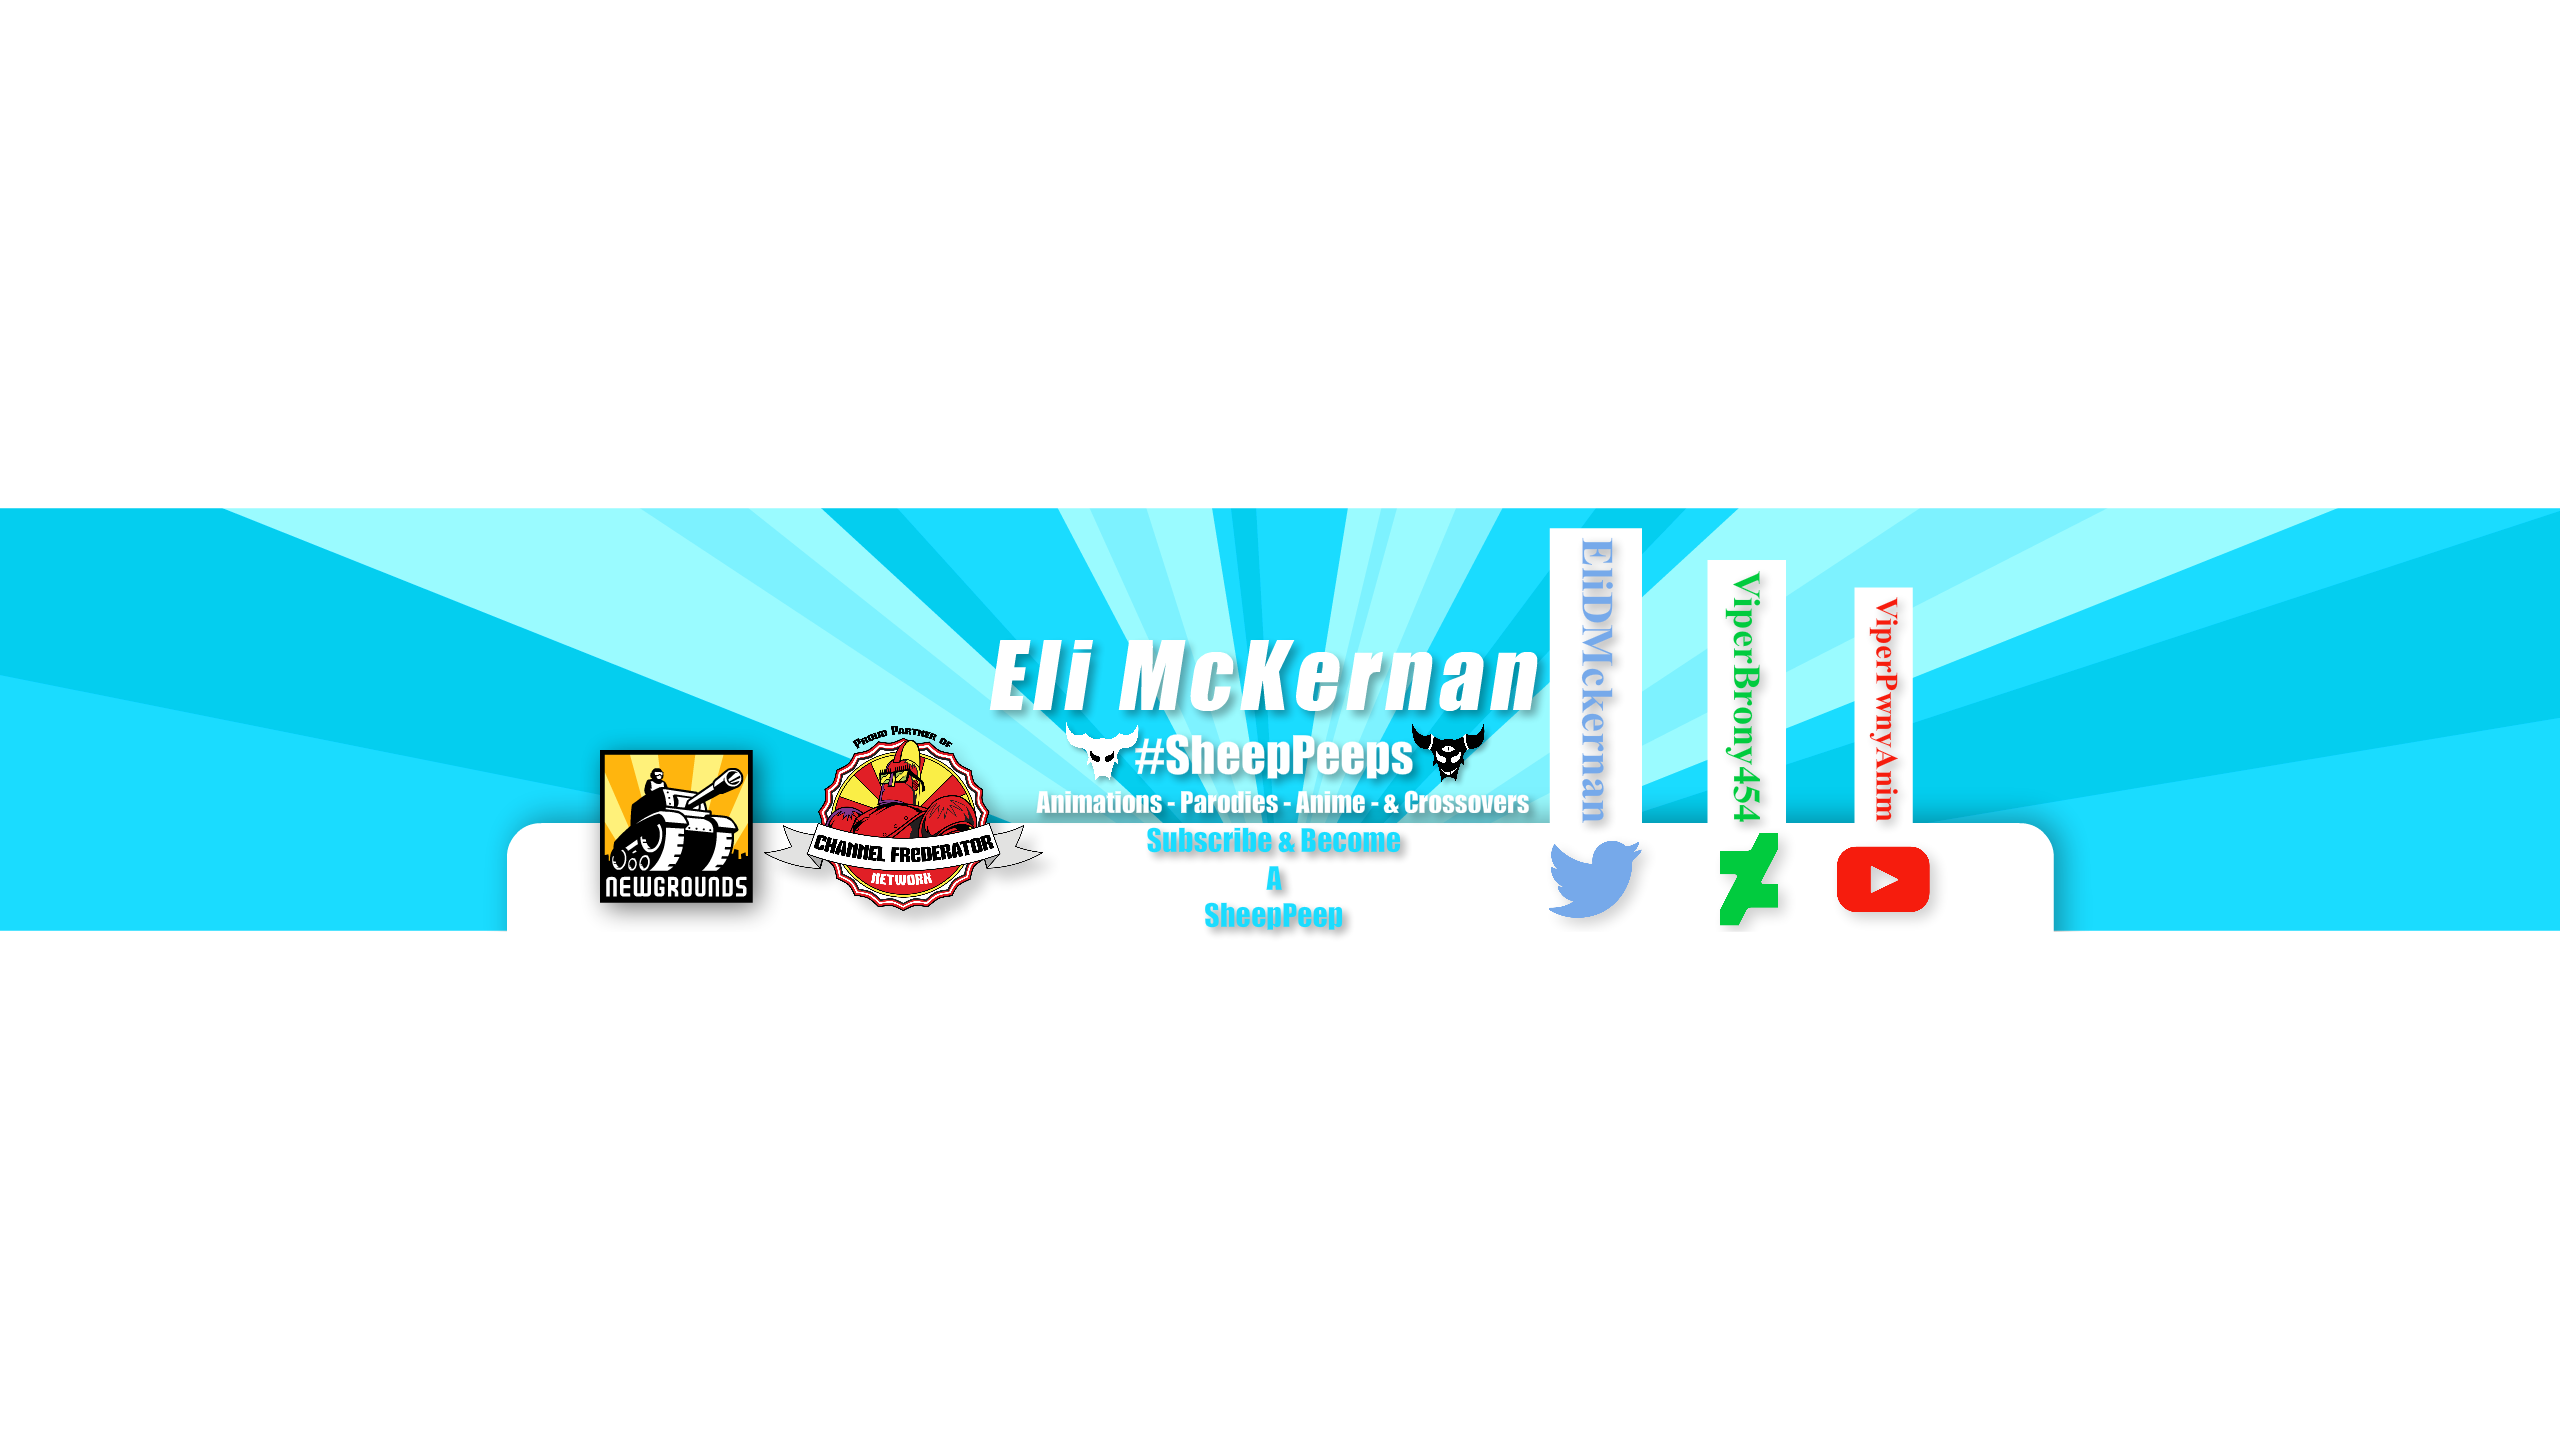 My New Channel Art for 2017